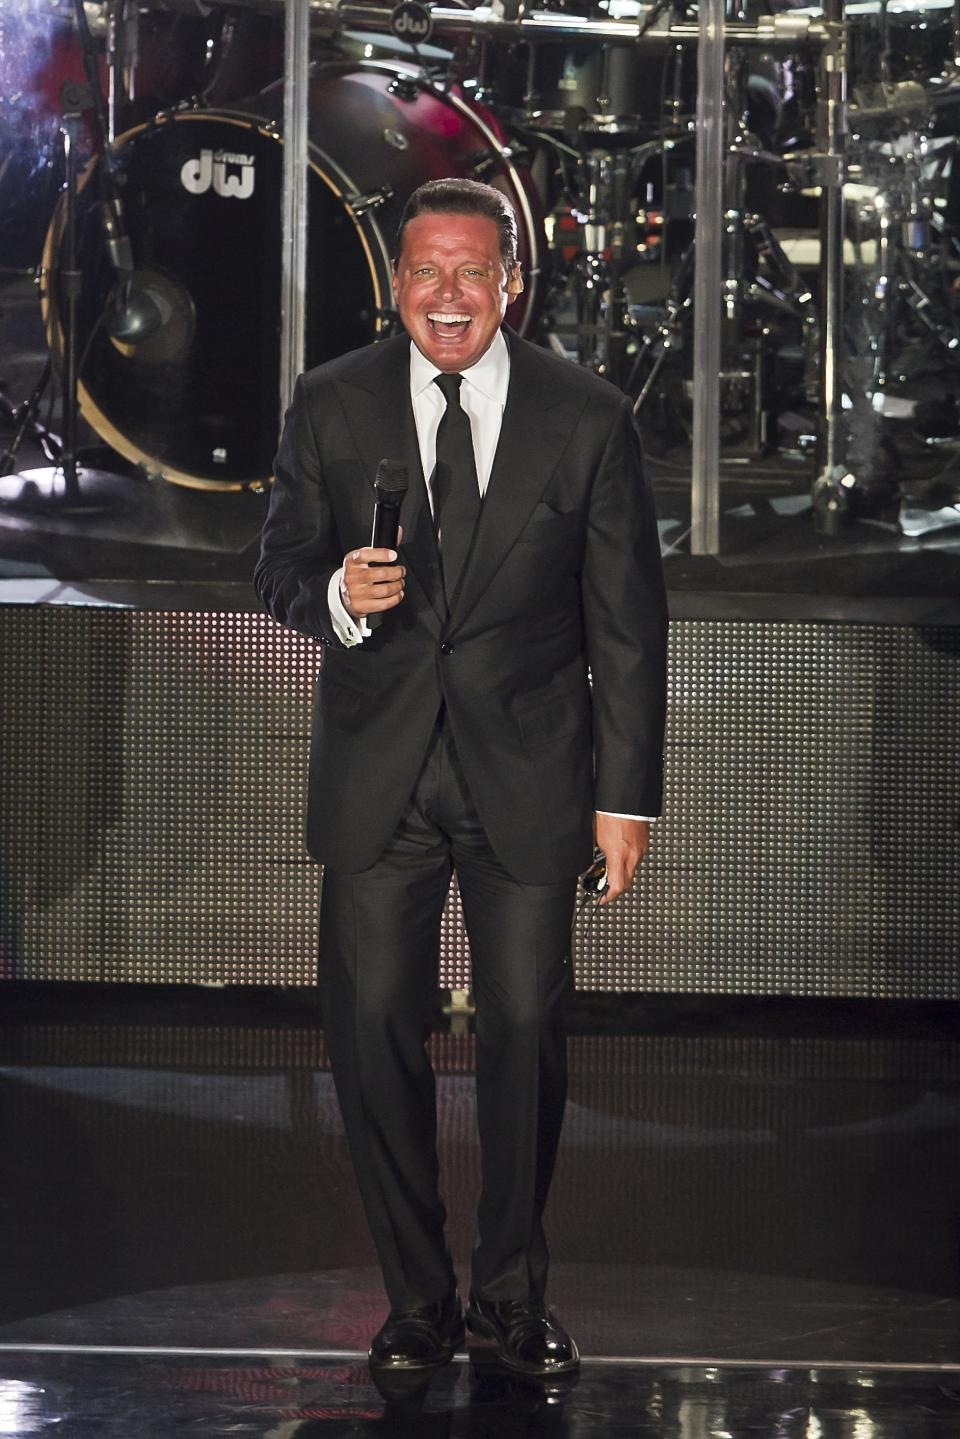 MEXICO CITY, MEXICO - FEBRUARY 12:  Mexican singer Luis Miguel performs during a show at National Auditorium on February 12, 2015 in Mexico City, Mexico. (Photo by Luis Ortiz/Clasos/LatinContent via Getty Images)